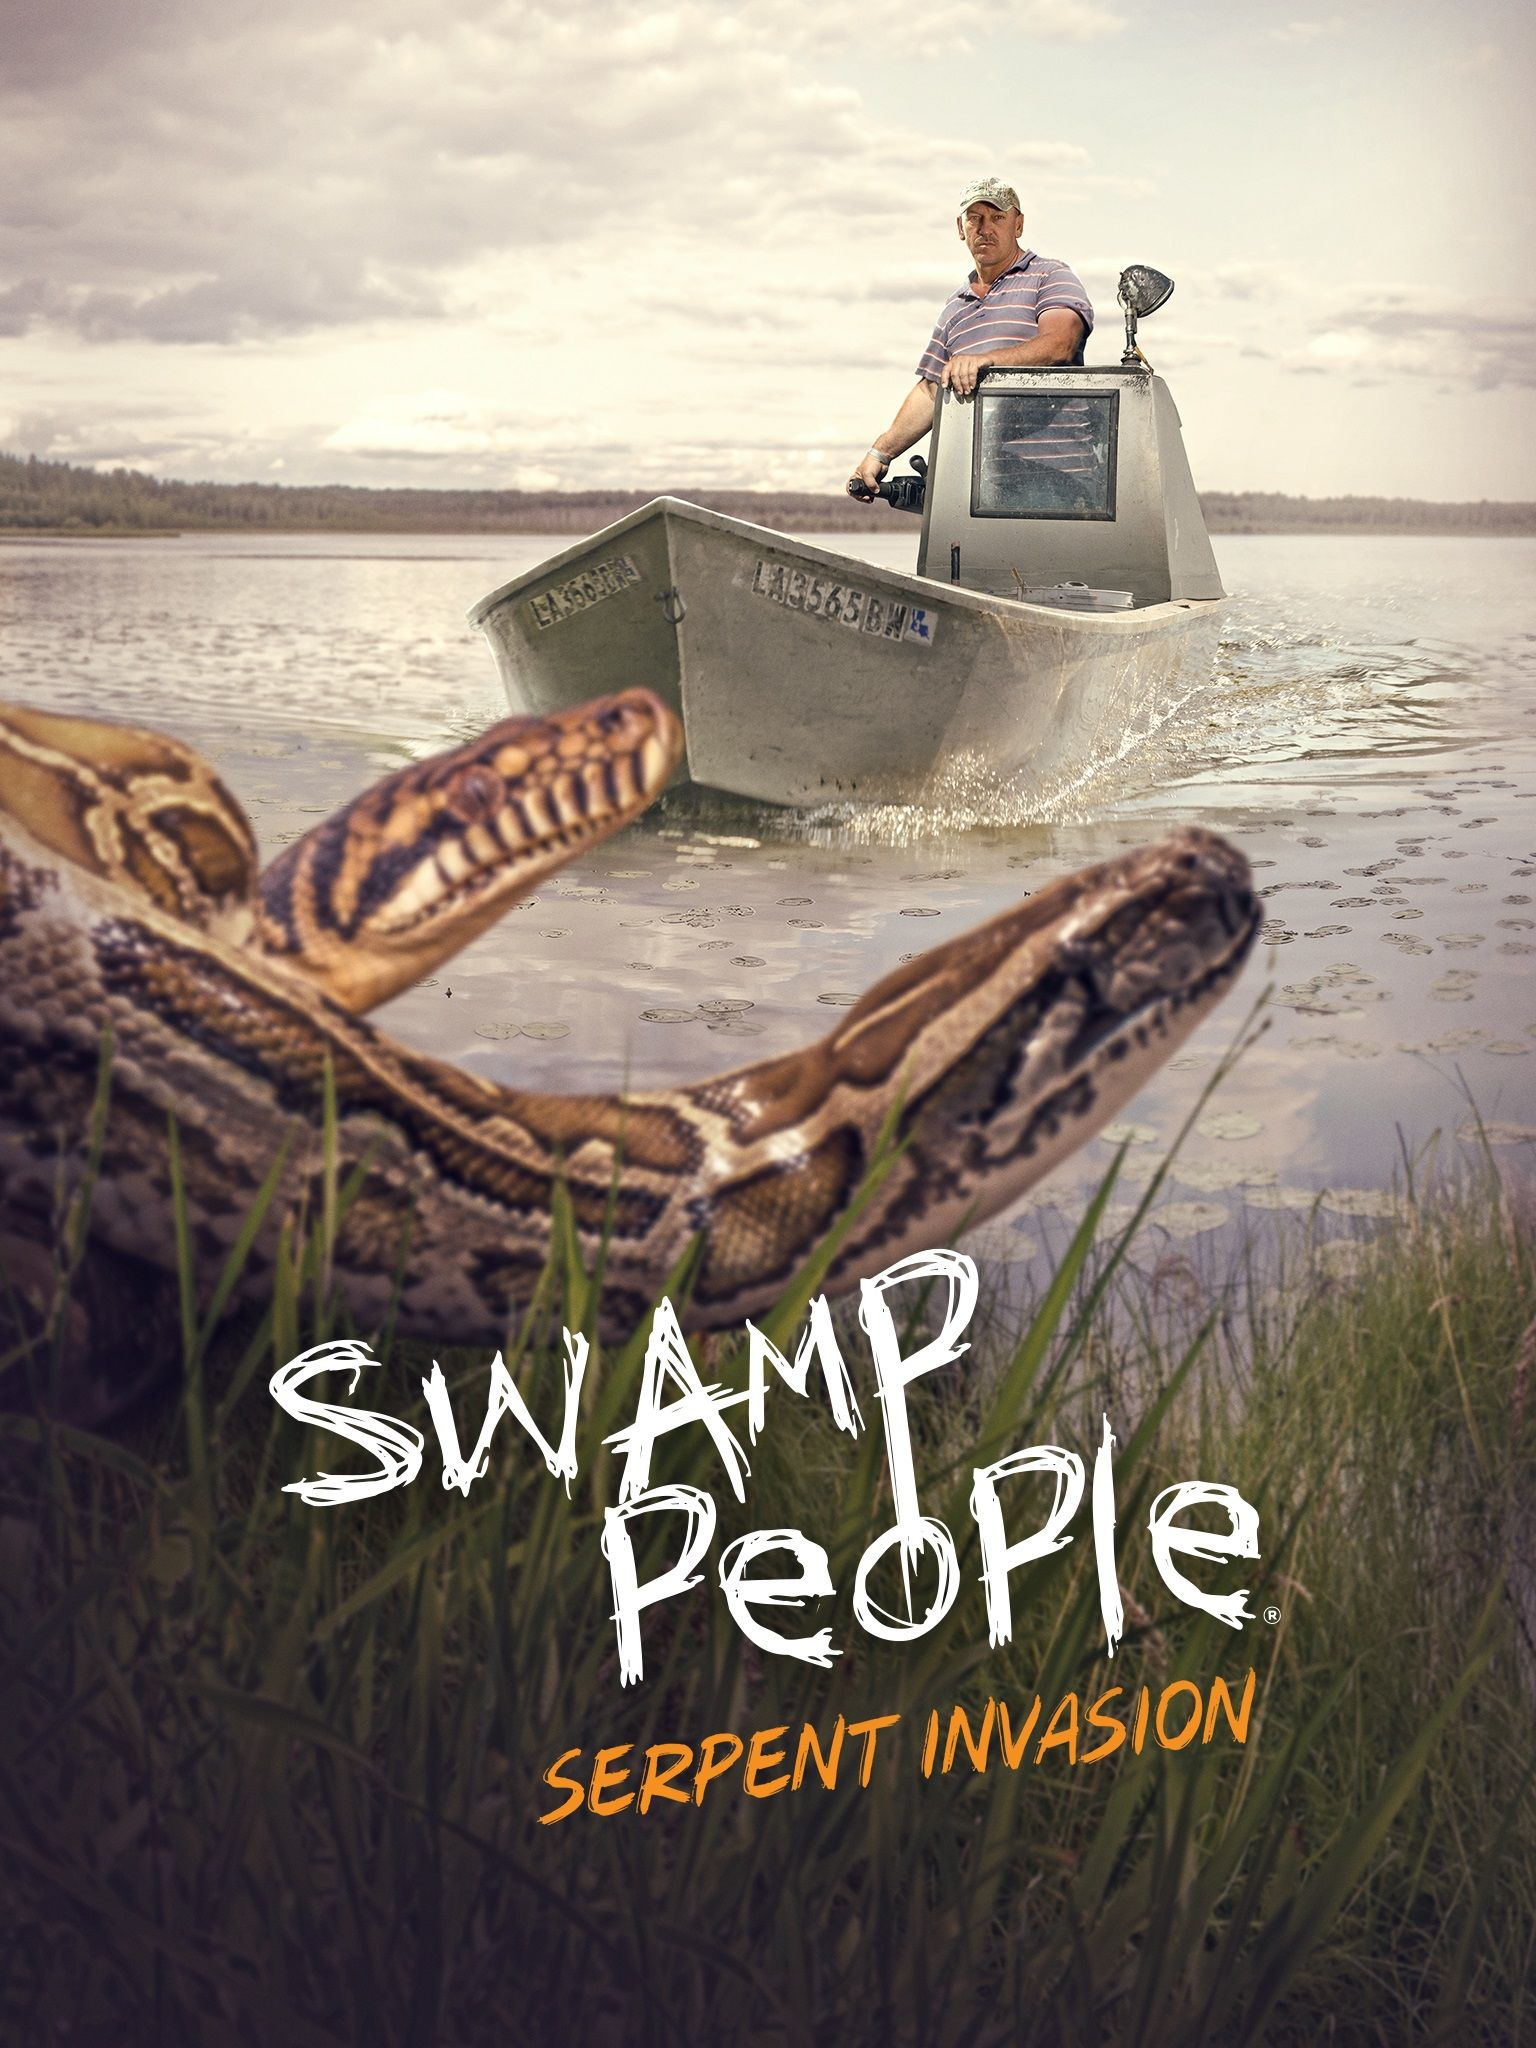 Swamp People: Serpent Invasion - Season 2 Episode 6